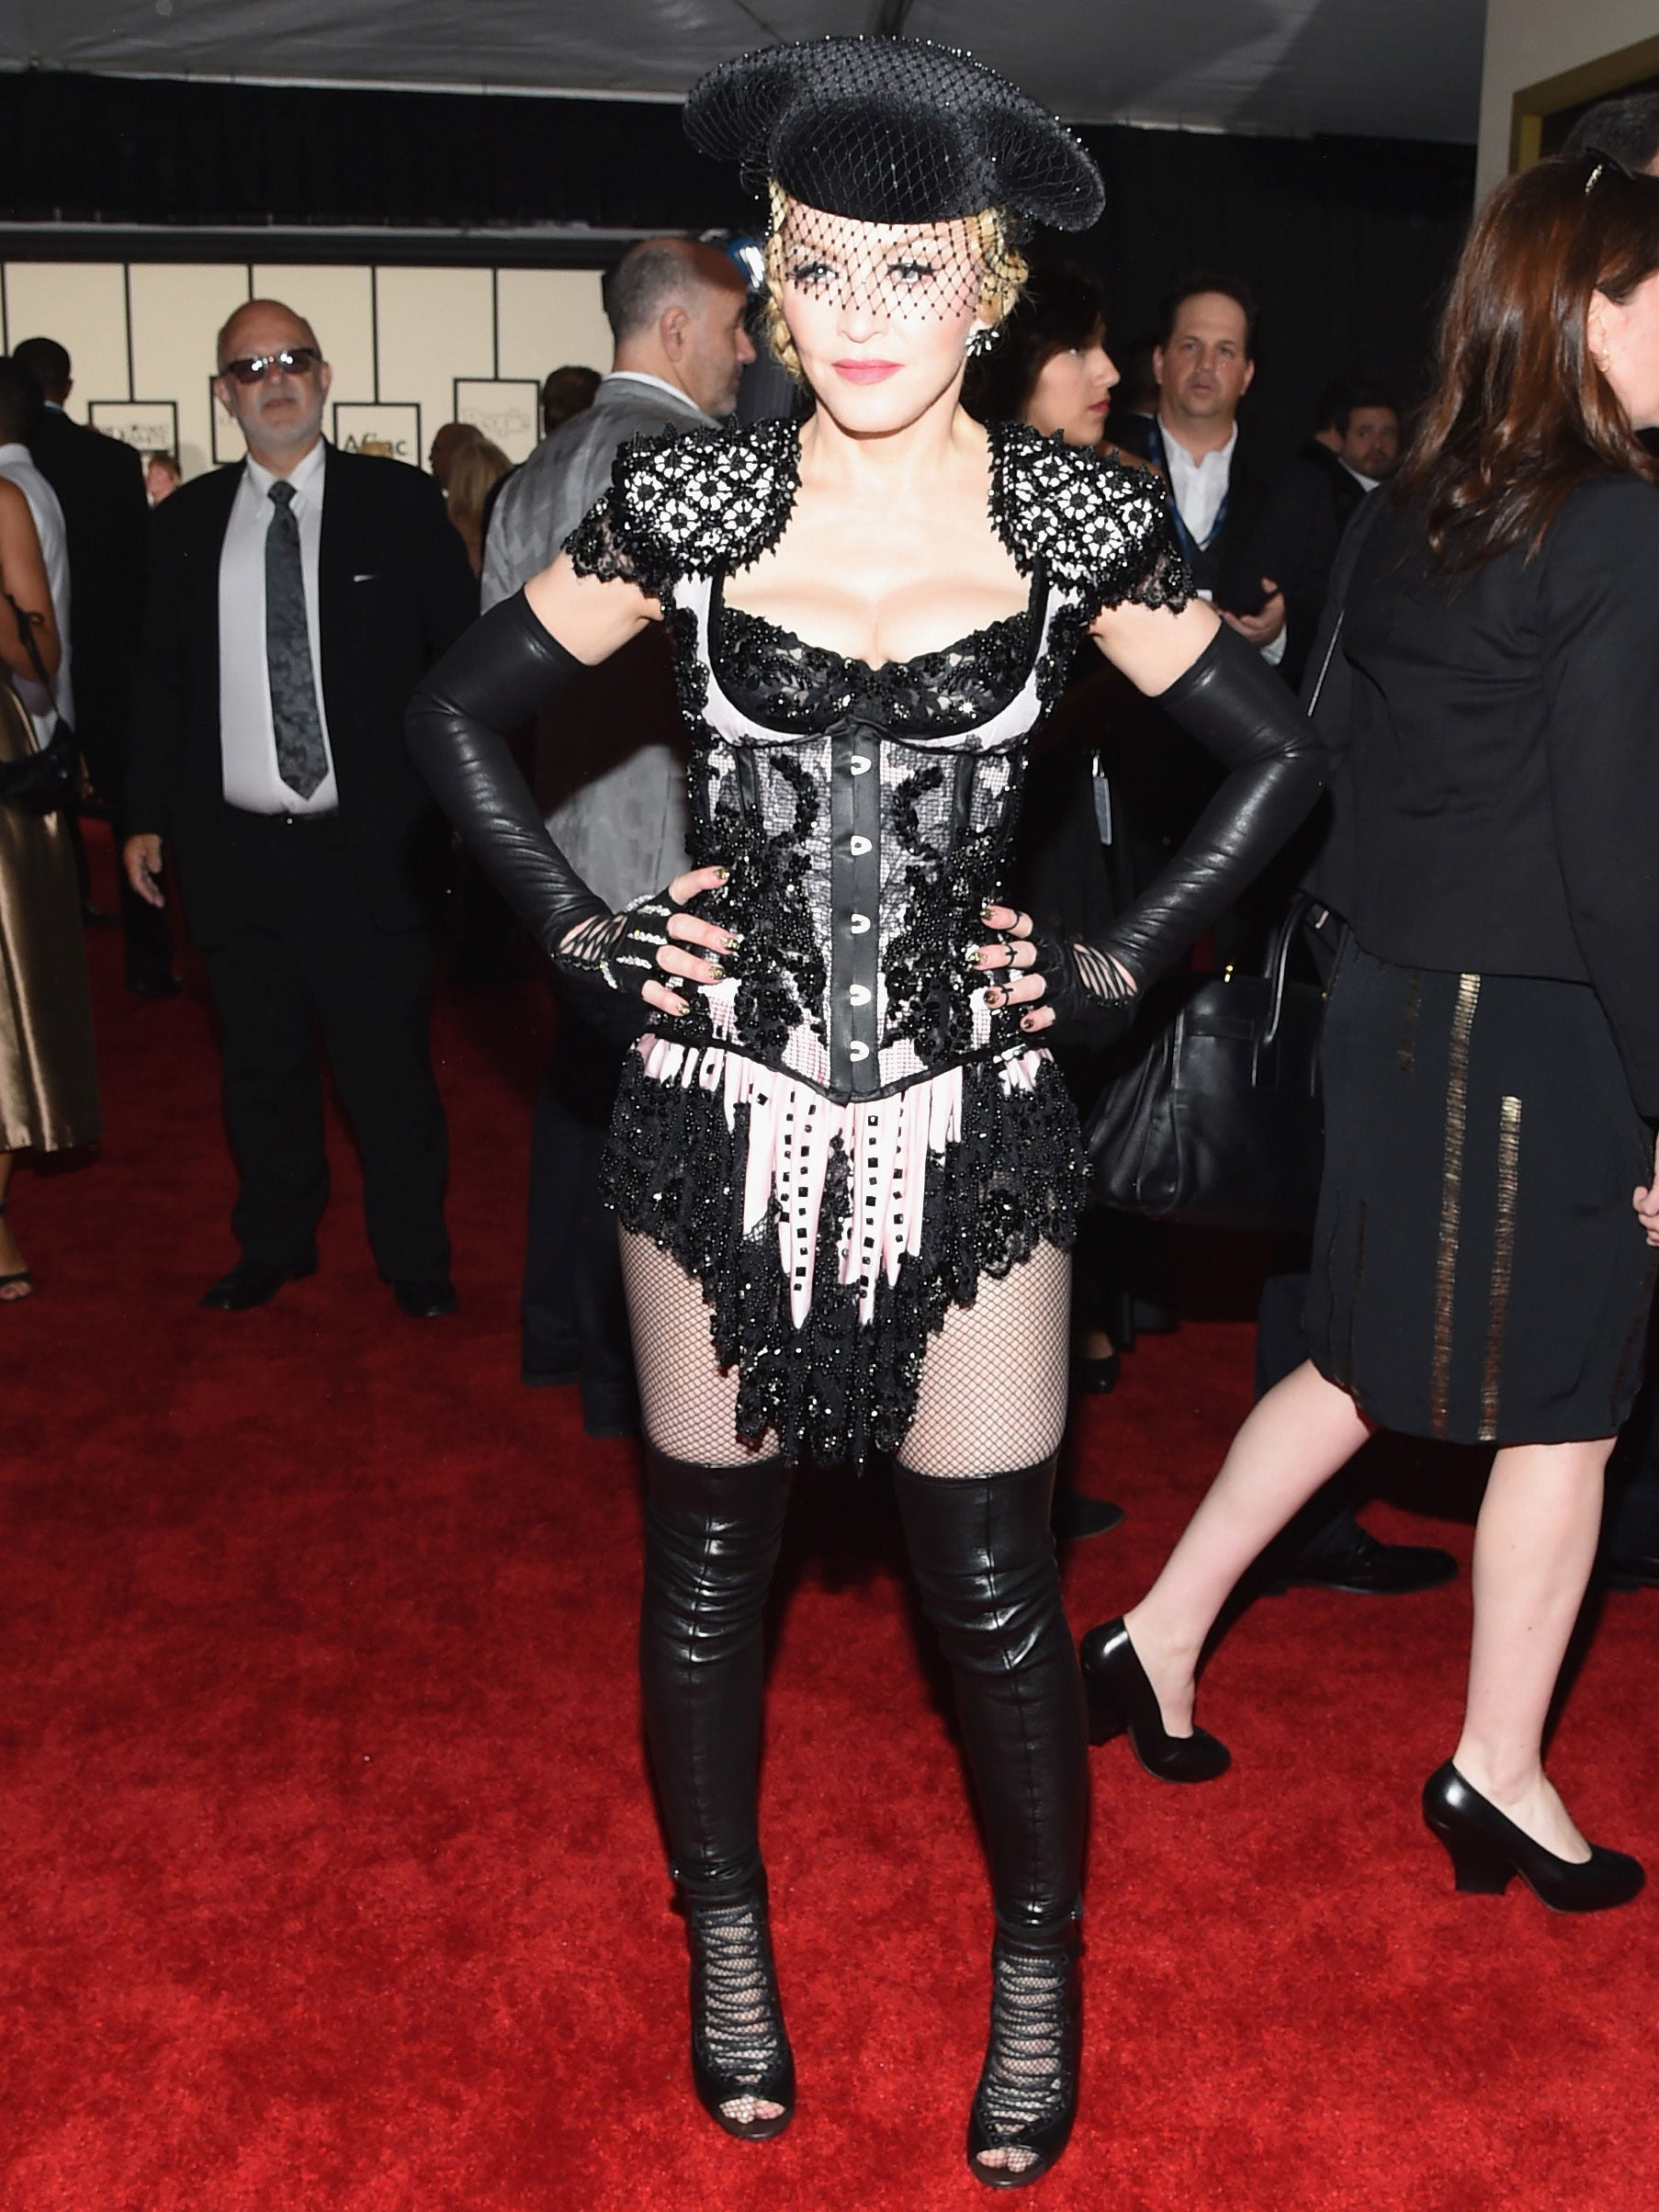 Matador Sends Twitter Wild The At Grammys Madonna's Outfit pqfw4UU